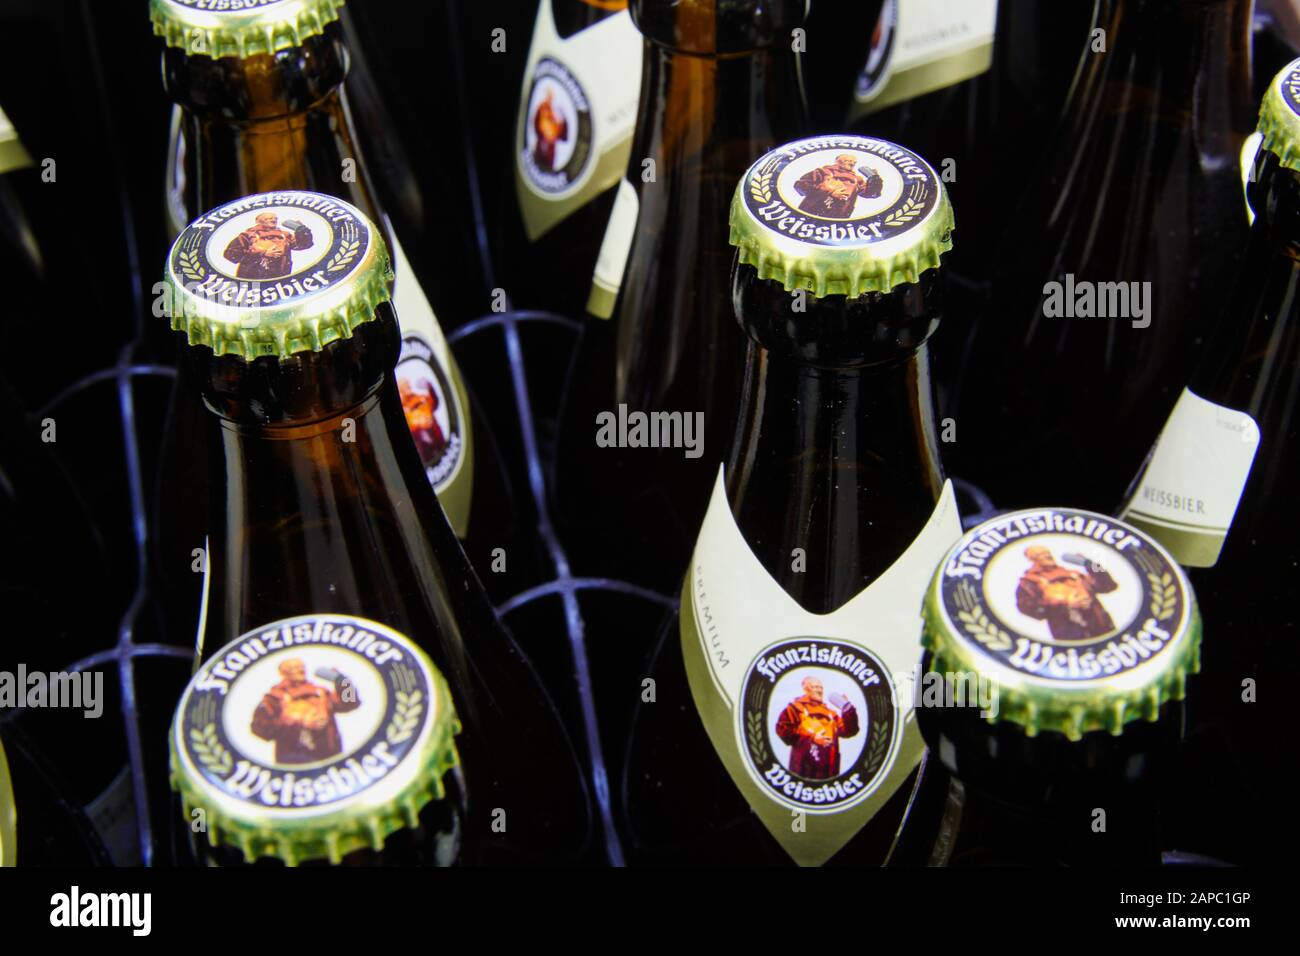 VIERSEN, GERMANY - AUGUST 21. 2019: Close up of bavarian Franziskaner wheat beer (Weissbier) bottles with crown caps in bottle case Stock Photo